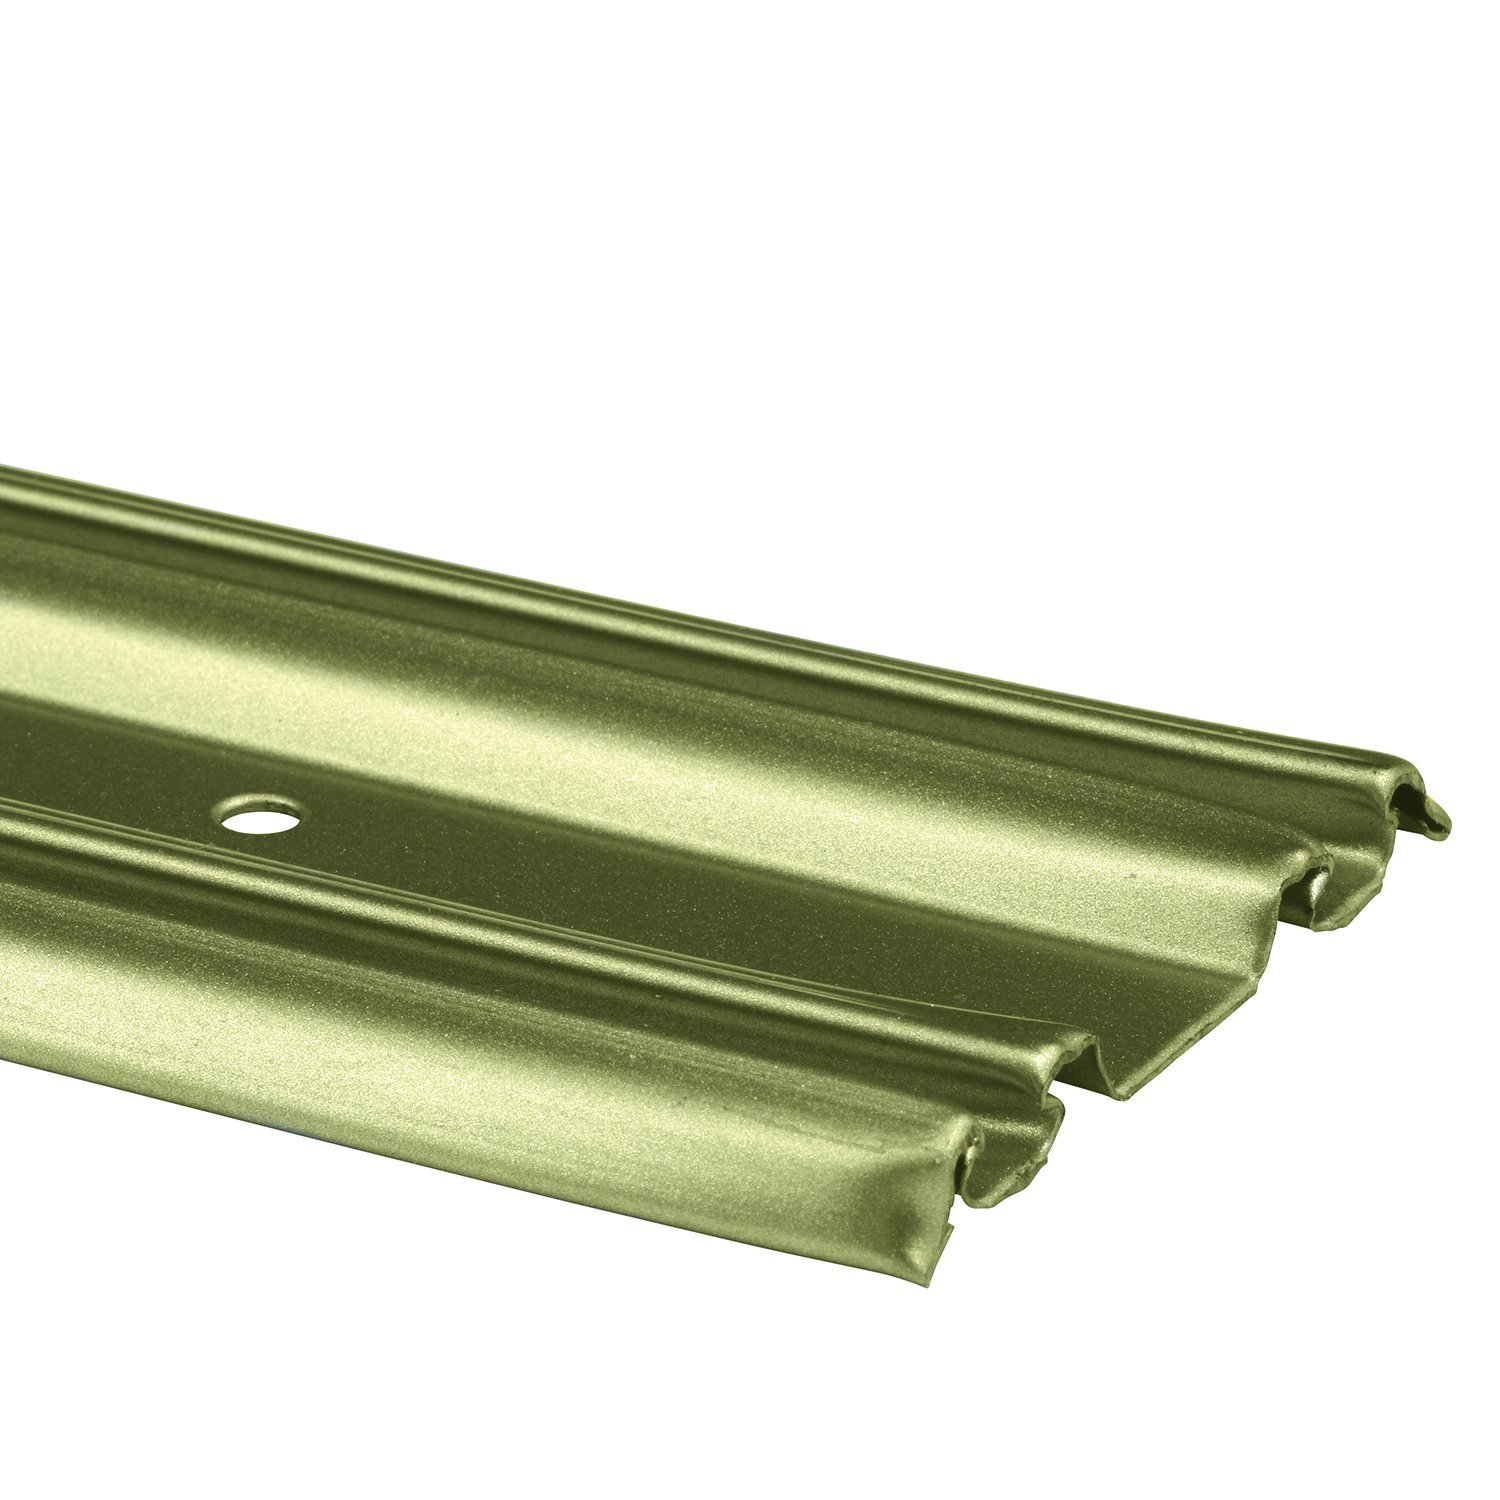 Prime-Line Products N 6879 By-Pass Mirror Door Bottom Track, 48 in., Roll-Formed Steel, Champagne Gold Finish by PRIME-LINE